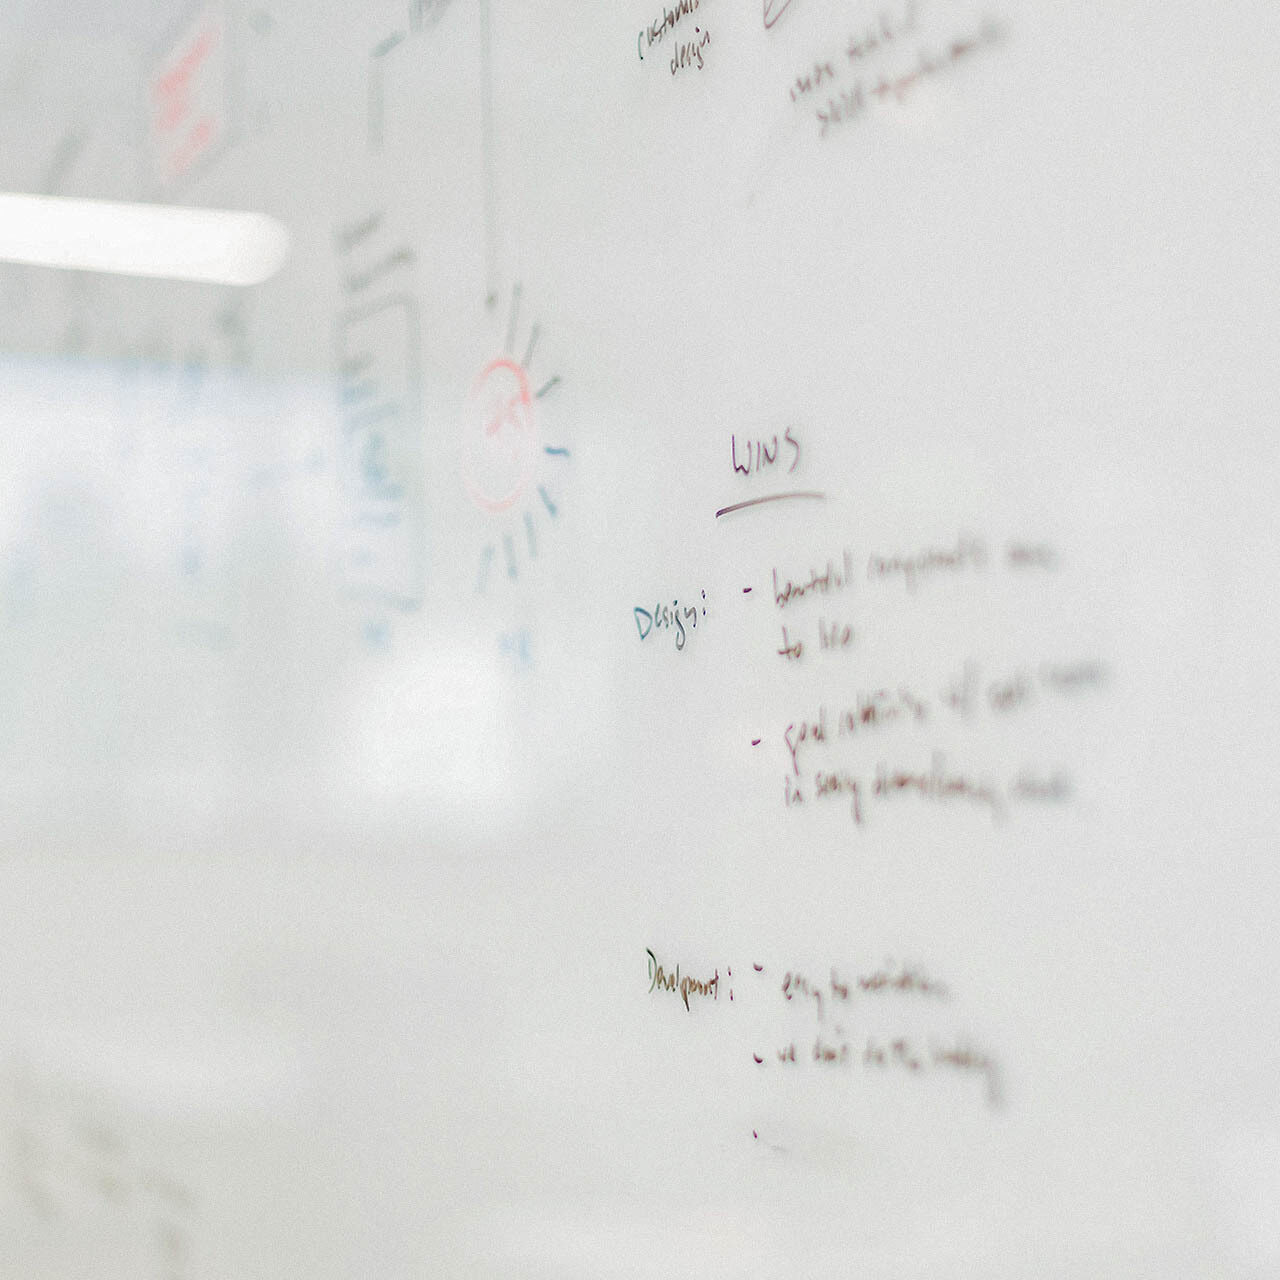 Brainstorm writing on a white board